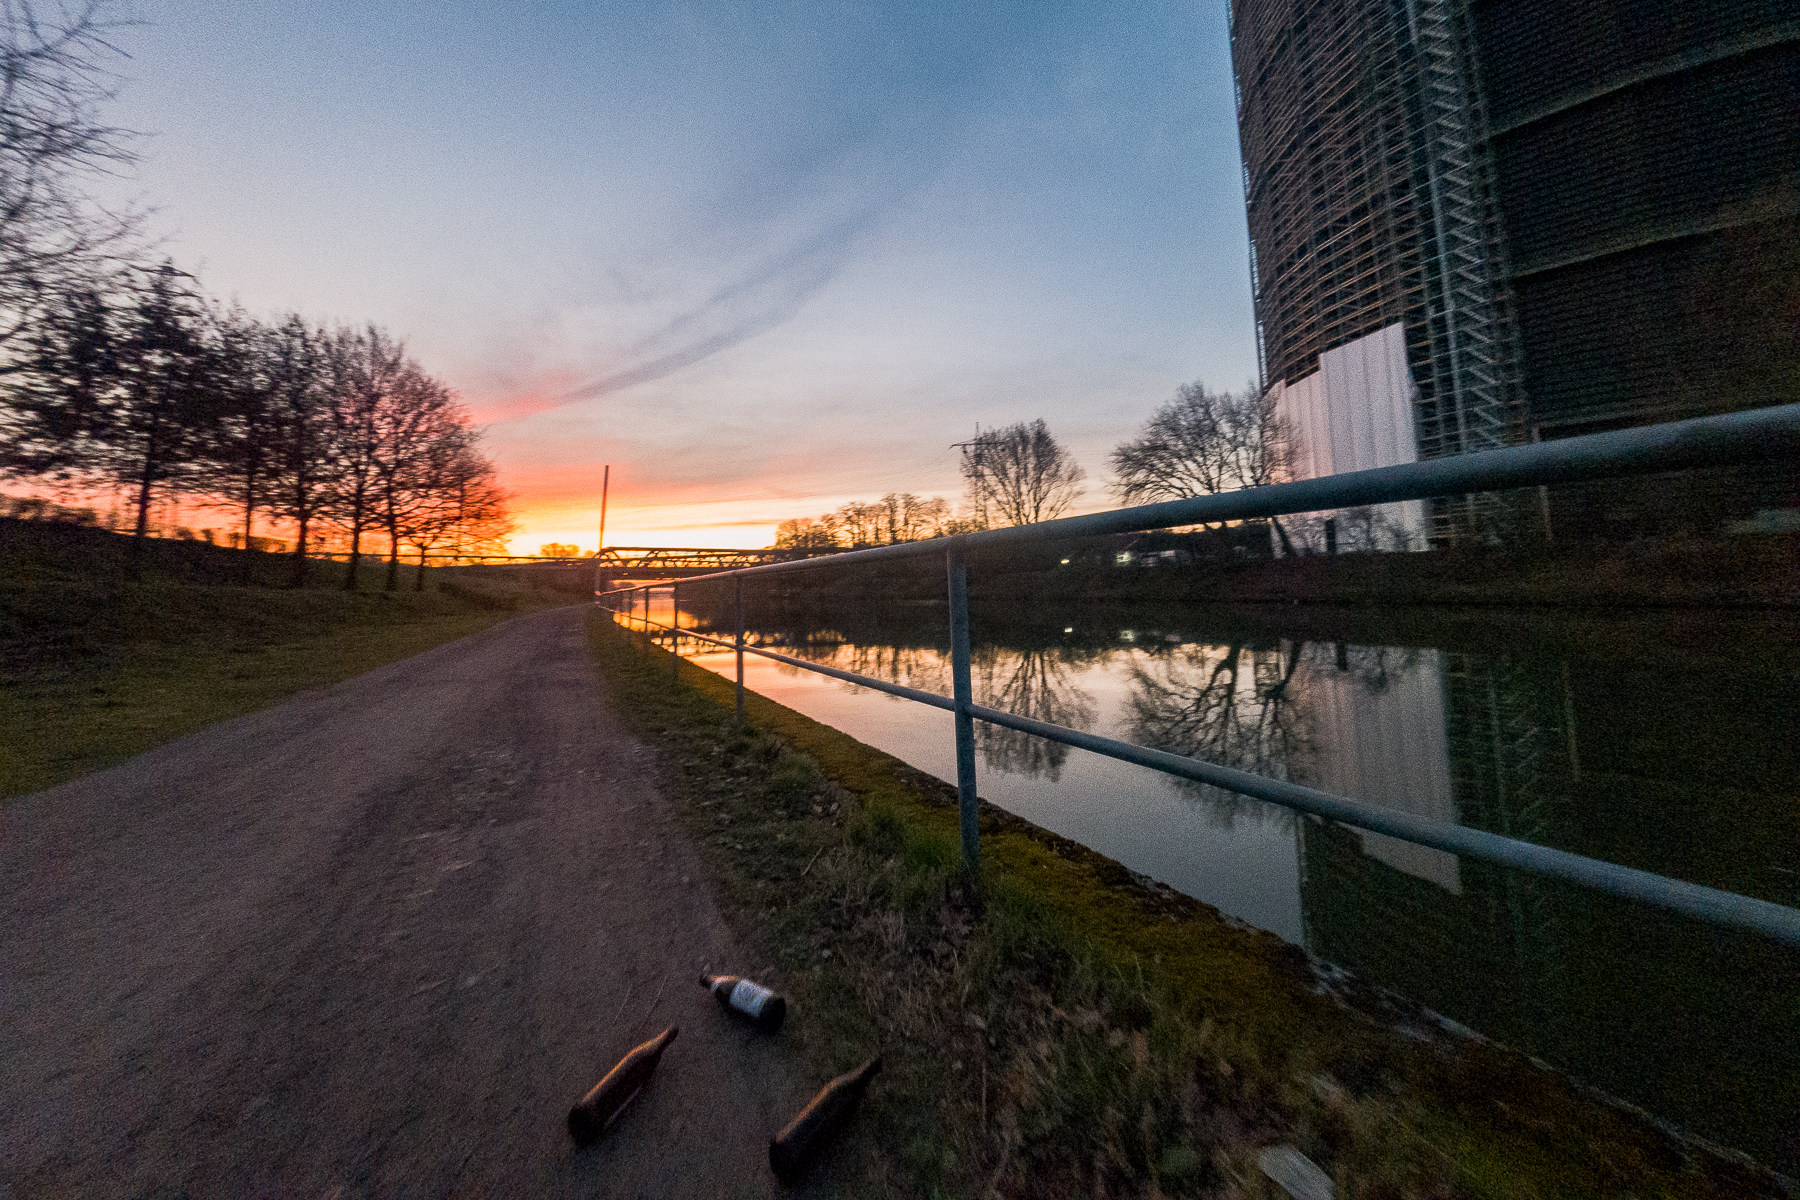 A scene from a sunrise run in the early stages of stay-at-home orders during the COVID-19 pandemic. Pictured here is the lonely canal trail near the Gasometer with empty beer bottles on the ground. Oberhausen, Germany, March 17, 2020.